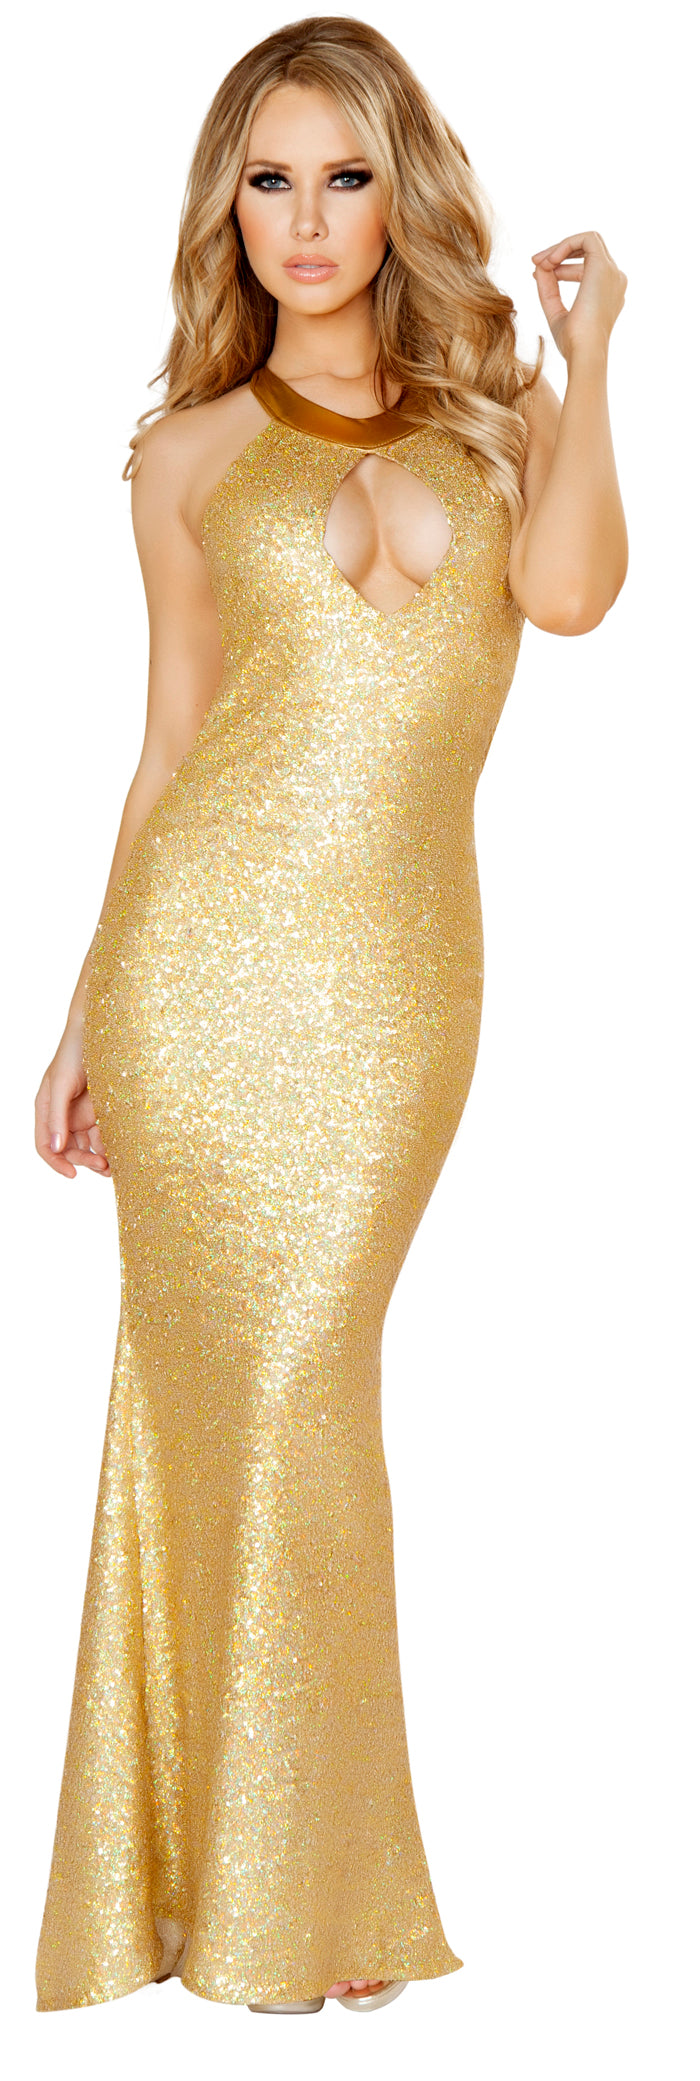 Floor Length Sequin Gown With Cut Out Gold Front RM3154